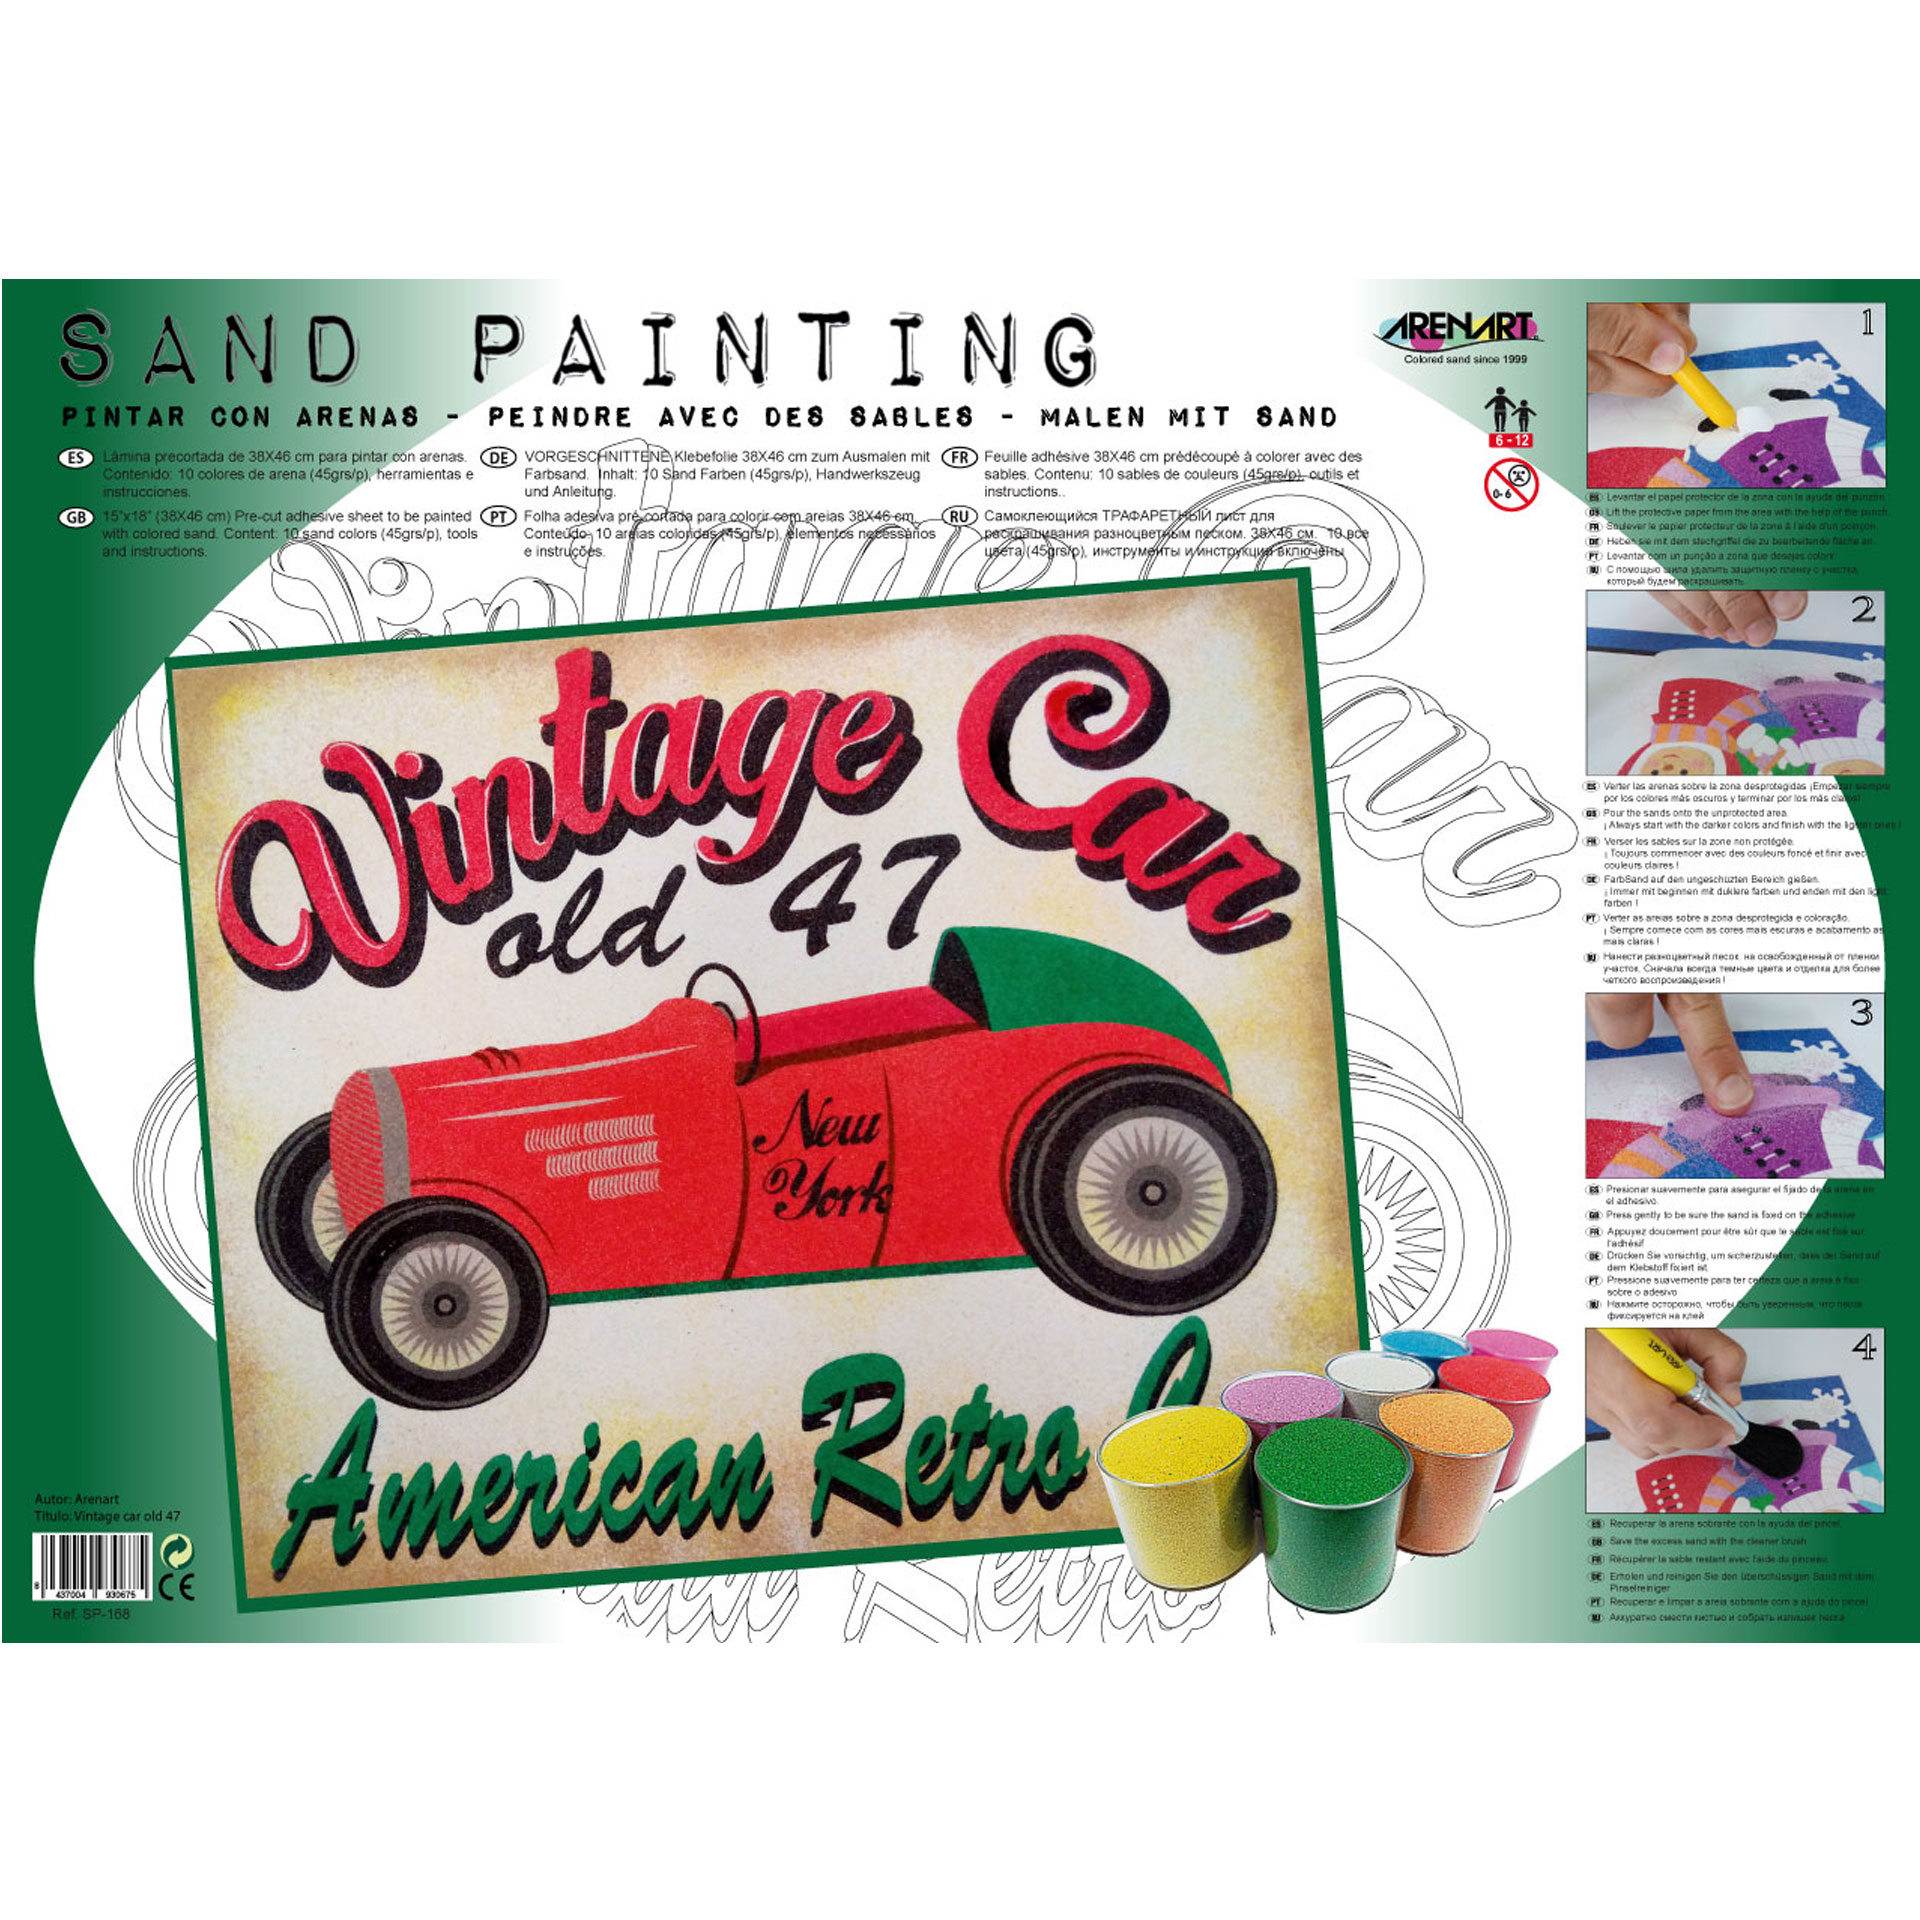 Sand Painting Vintage Car Old 47